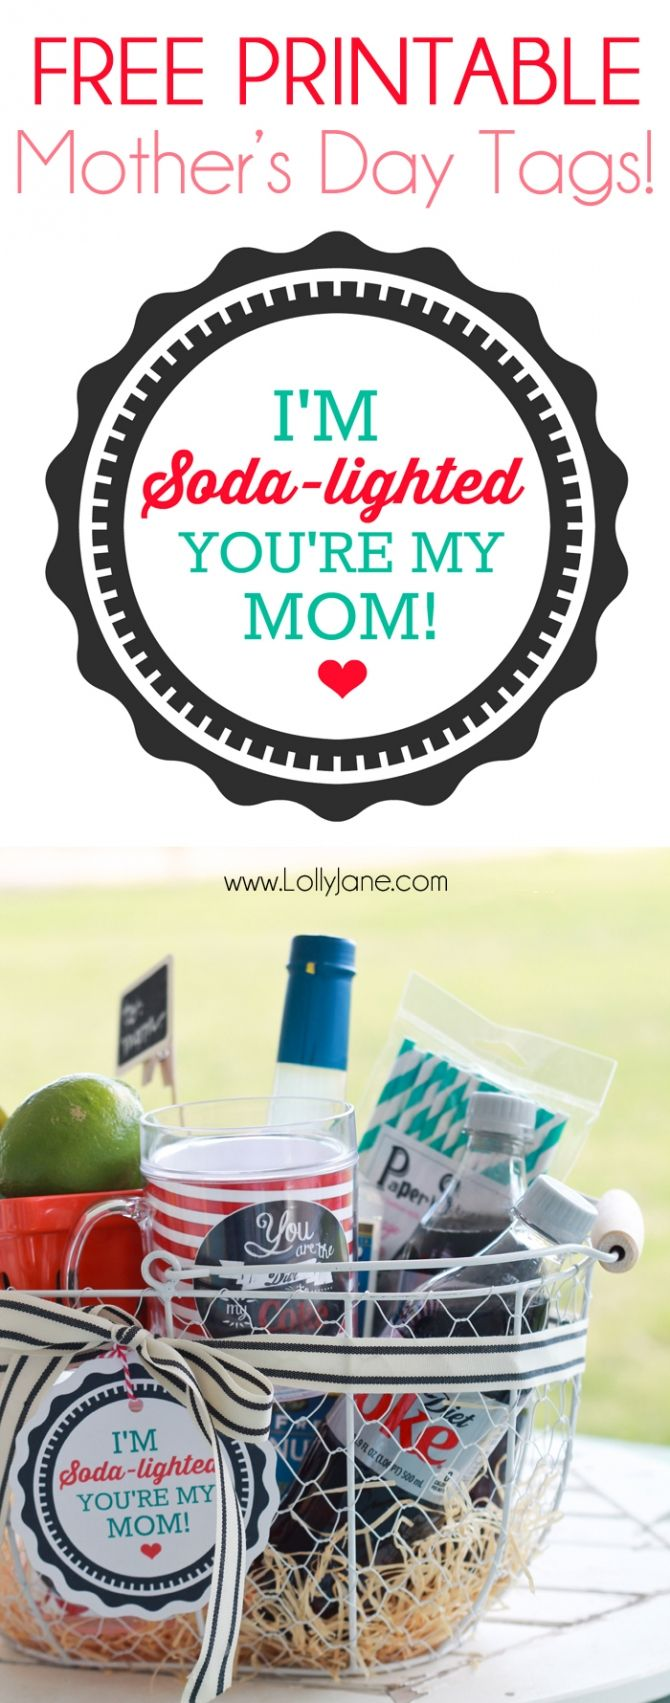 Mothers Day Soda Lighted Basket With Free Printable Tag Mother S Day Diy Mothers Day Baskets Coke Gifts